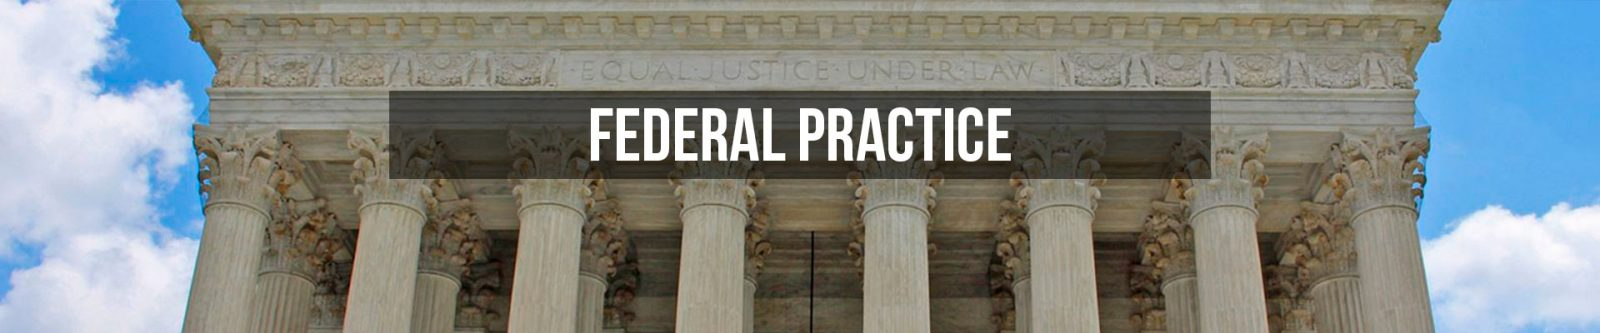 federal-practice